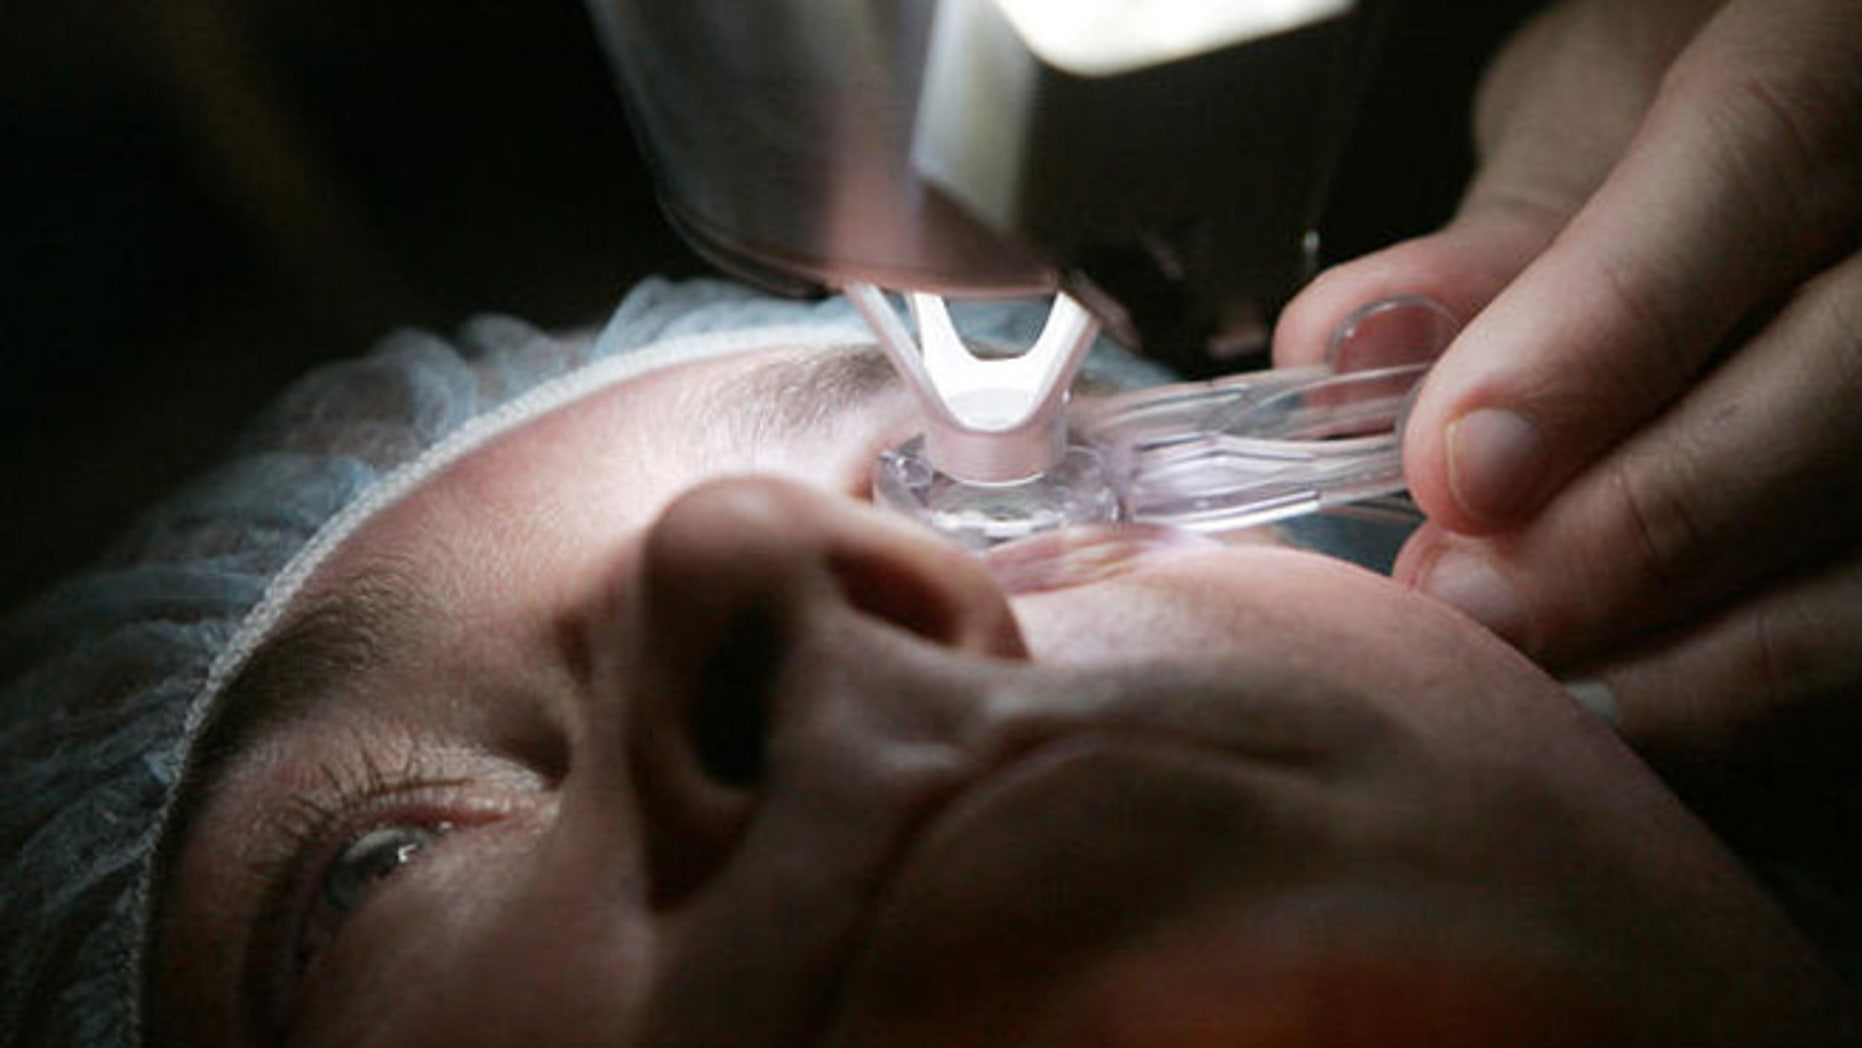 ** ADVANCE FOR SUNDAY, DEC. 11 **Dr. Colman Kraff docks the femtosecond laser, flattening the cornea, of patient Steve Parker as the initial step in creating the Lasik flap during Parker's eye surgery at Kraff's offices in Chicago Nov. 1, 2005. (AP Photo/Charles Rex Arbogast)